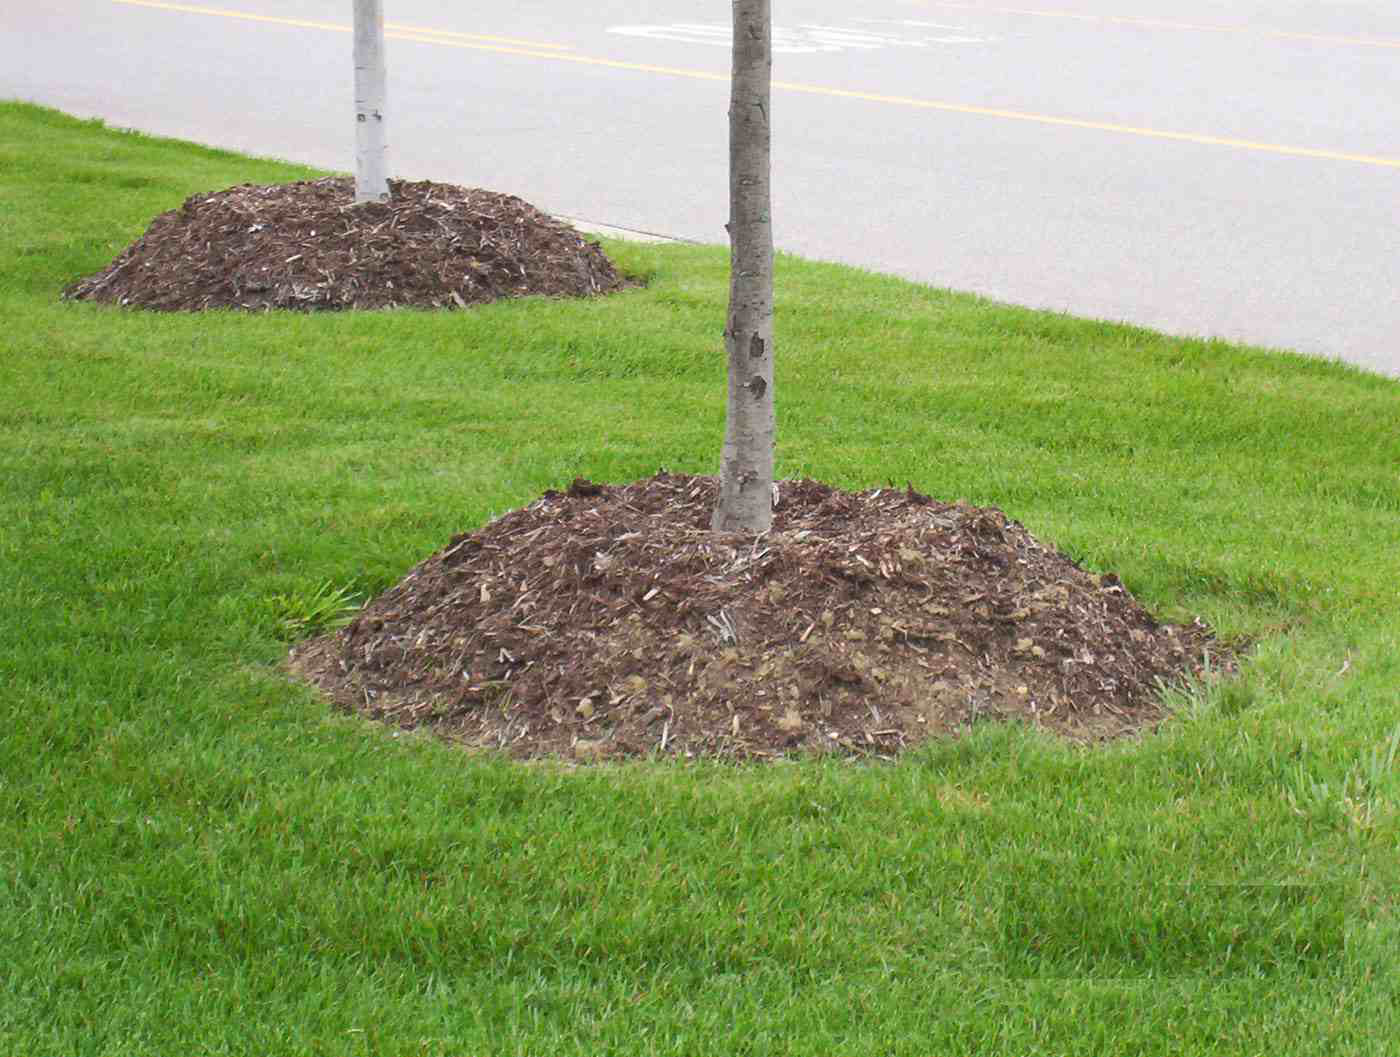 Mulch Volcanoes And The Threats They Pose To Valuable Trees